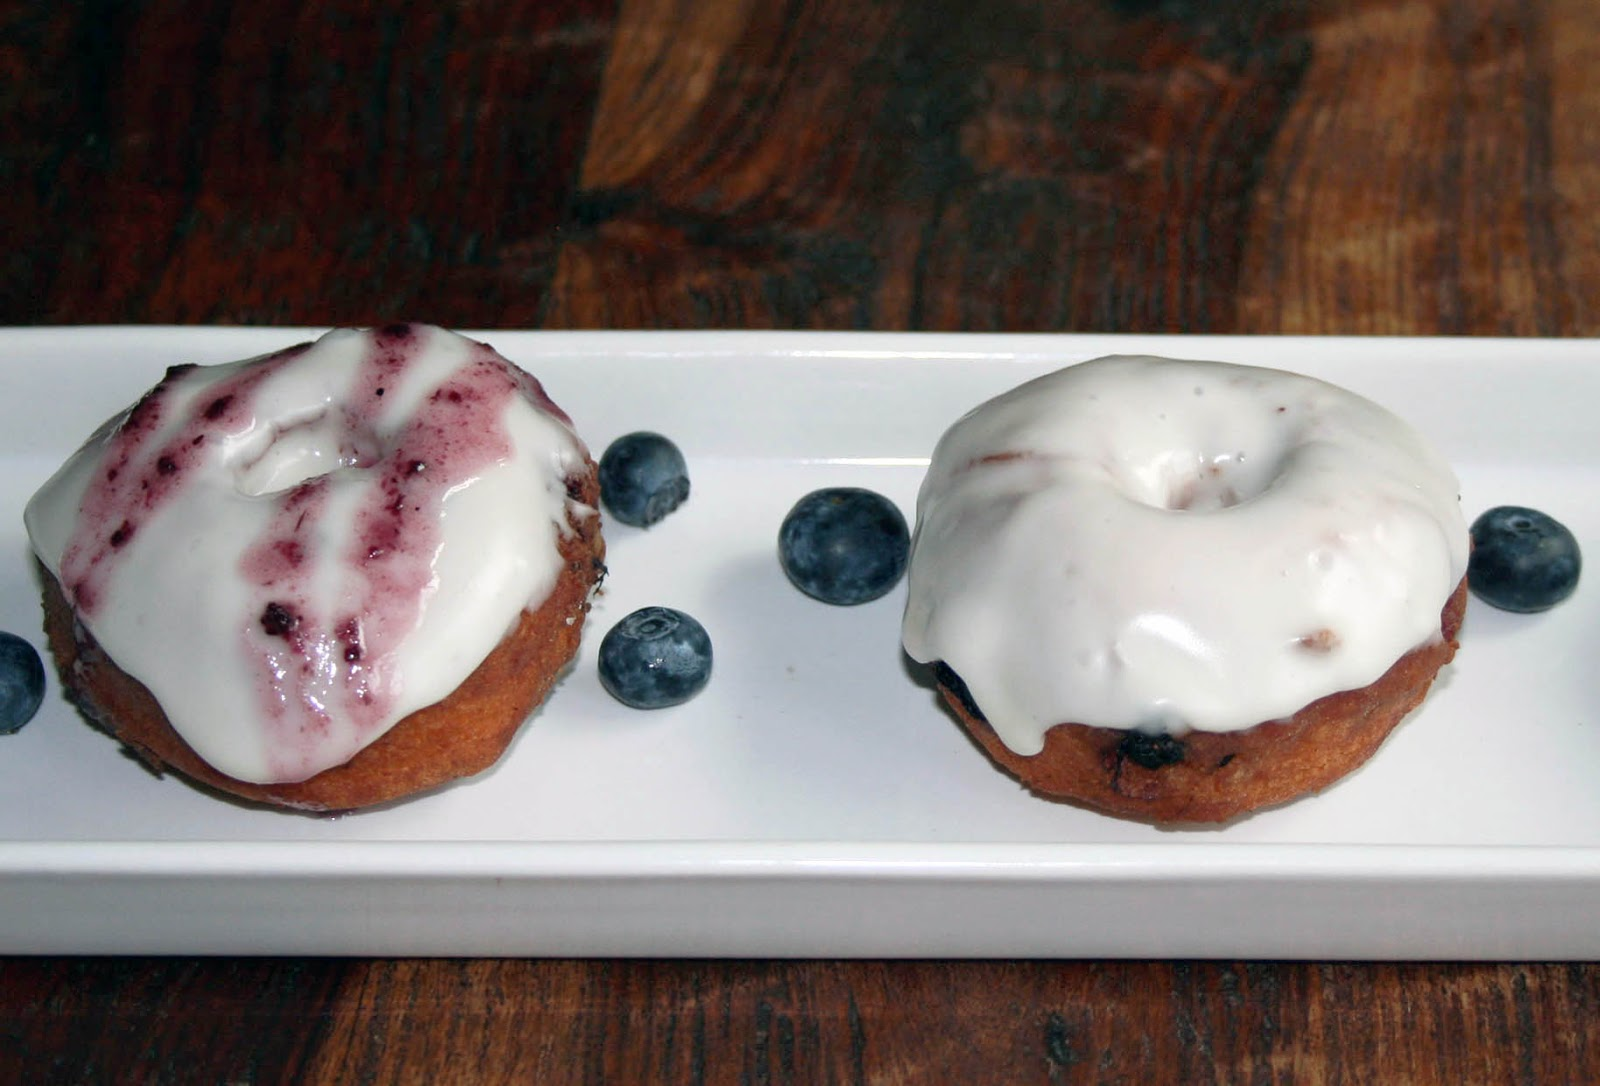 Monday Morning Donut: Blueberry Coffee Cake Donuts With Vanilla Icing